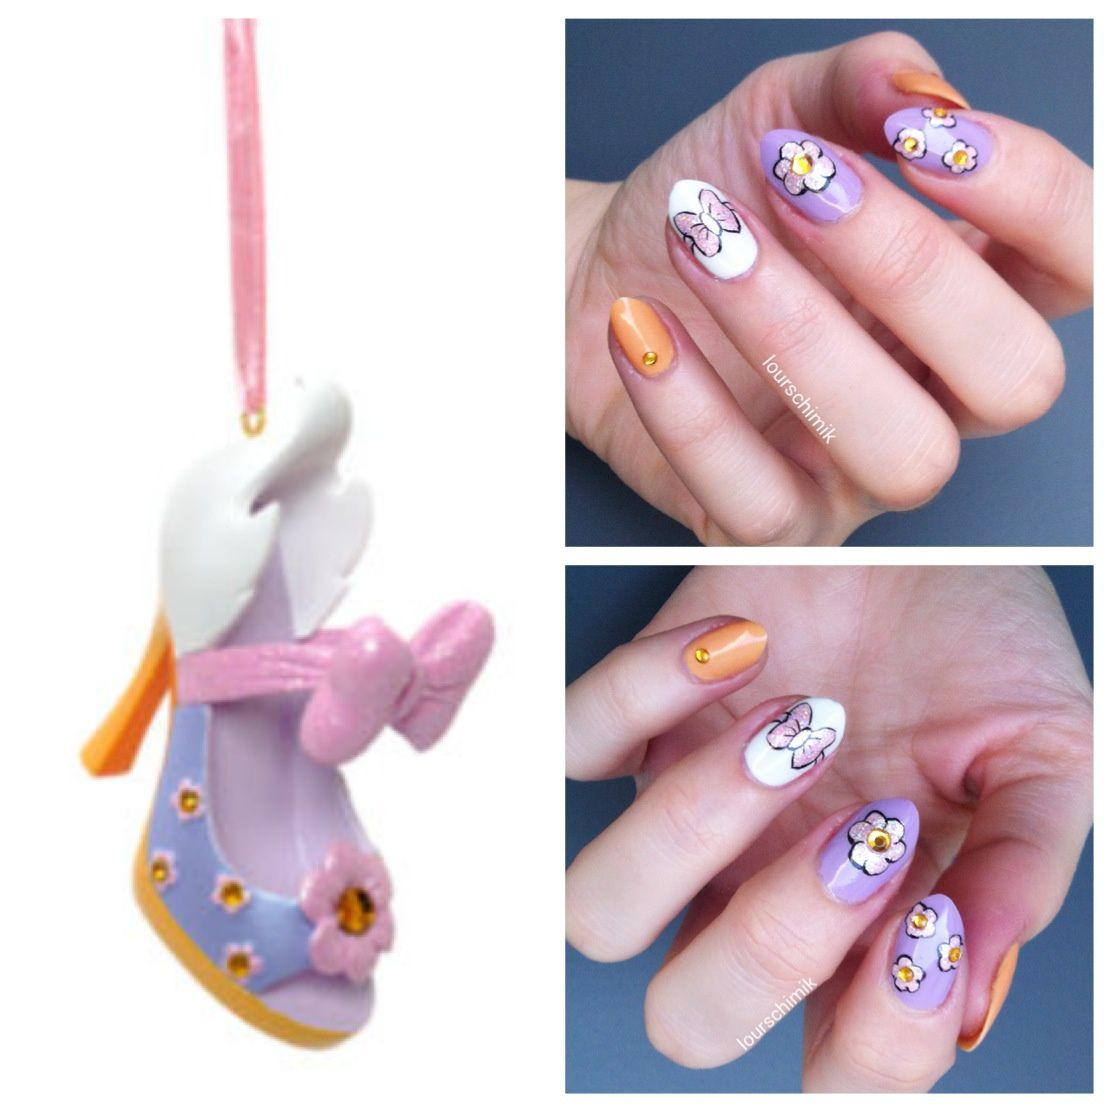 Disney nails - Daisy Duck